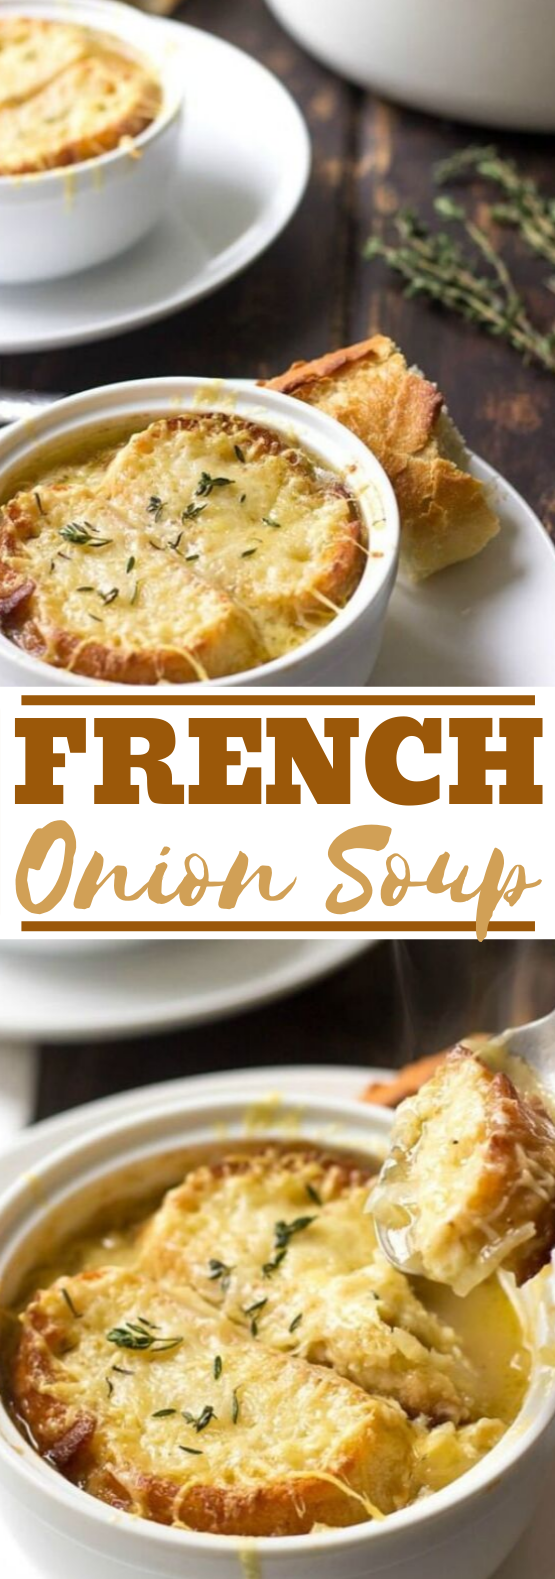 Easy French Onion Soup #soup #recipes #dinner #comfortfood #weeknight